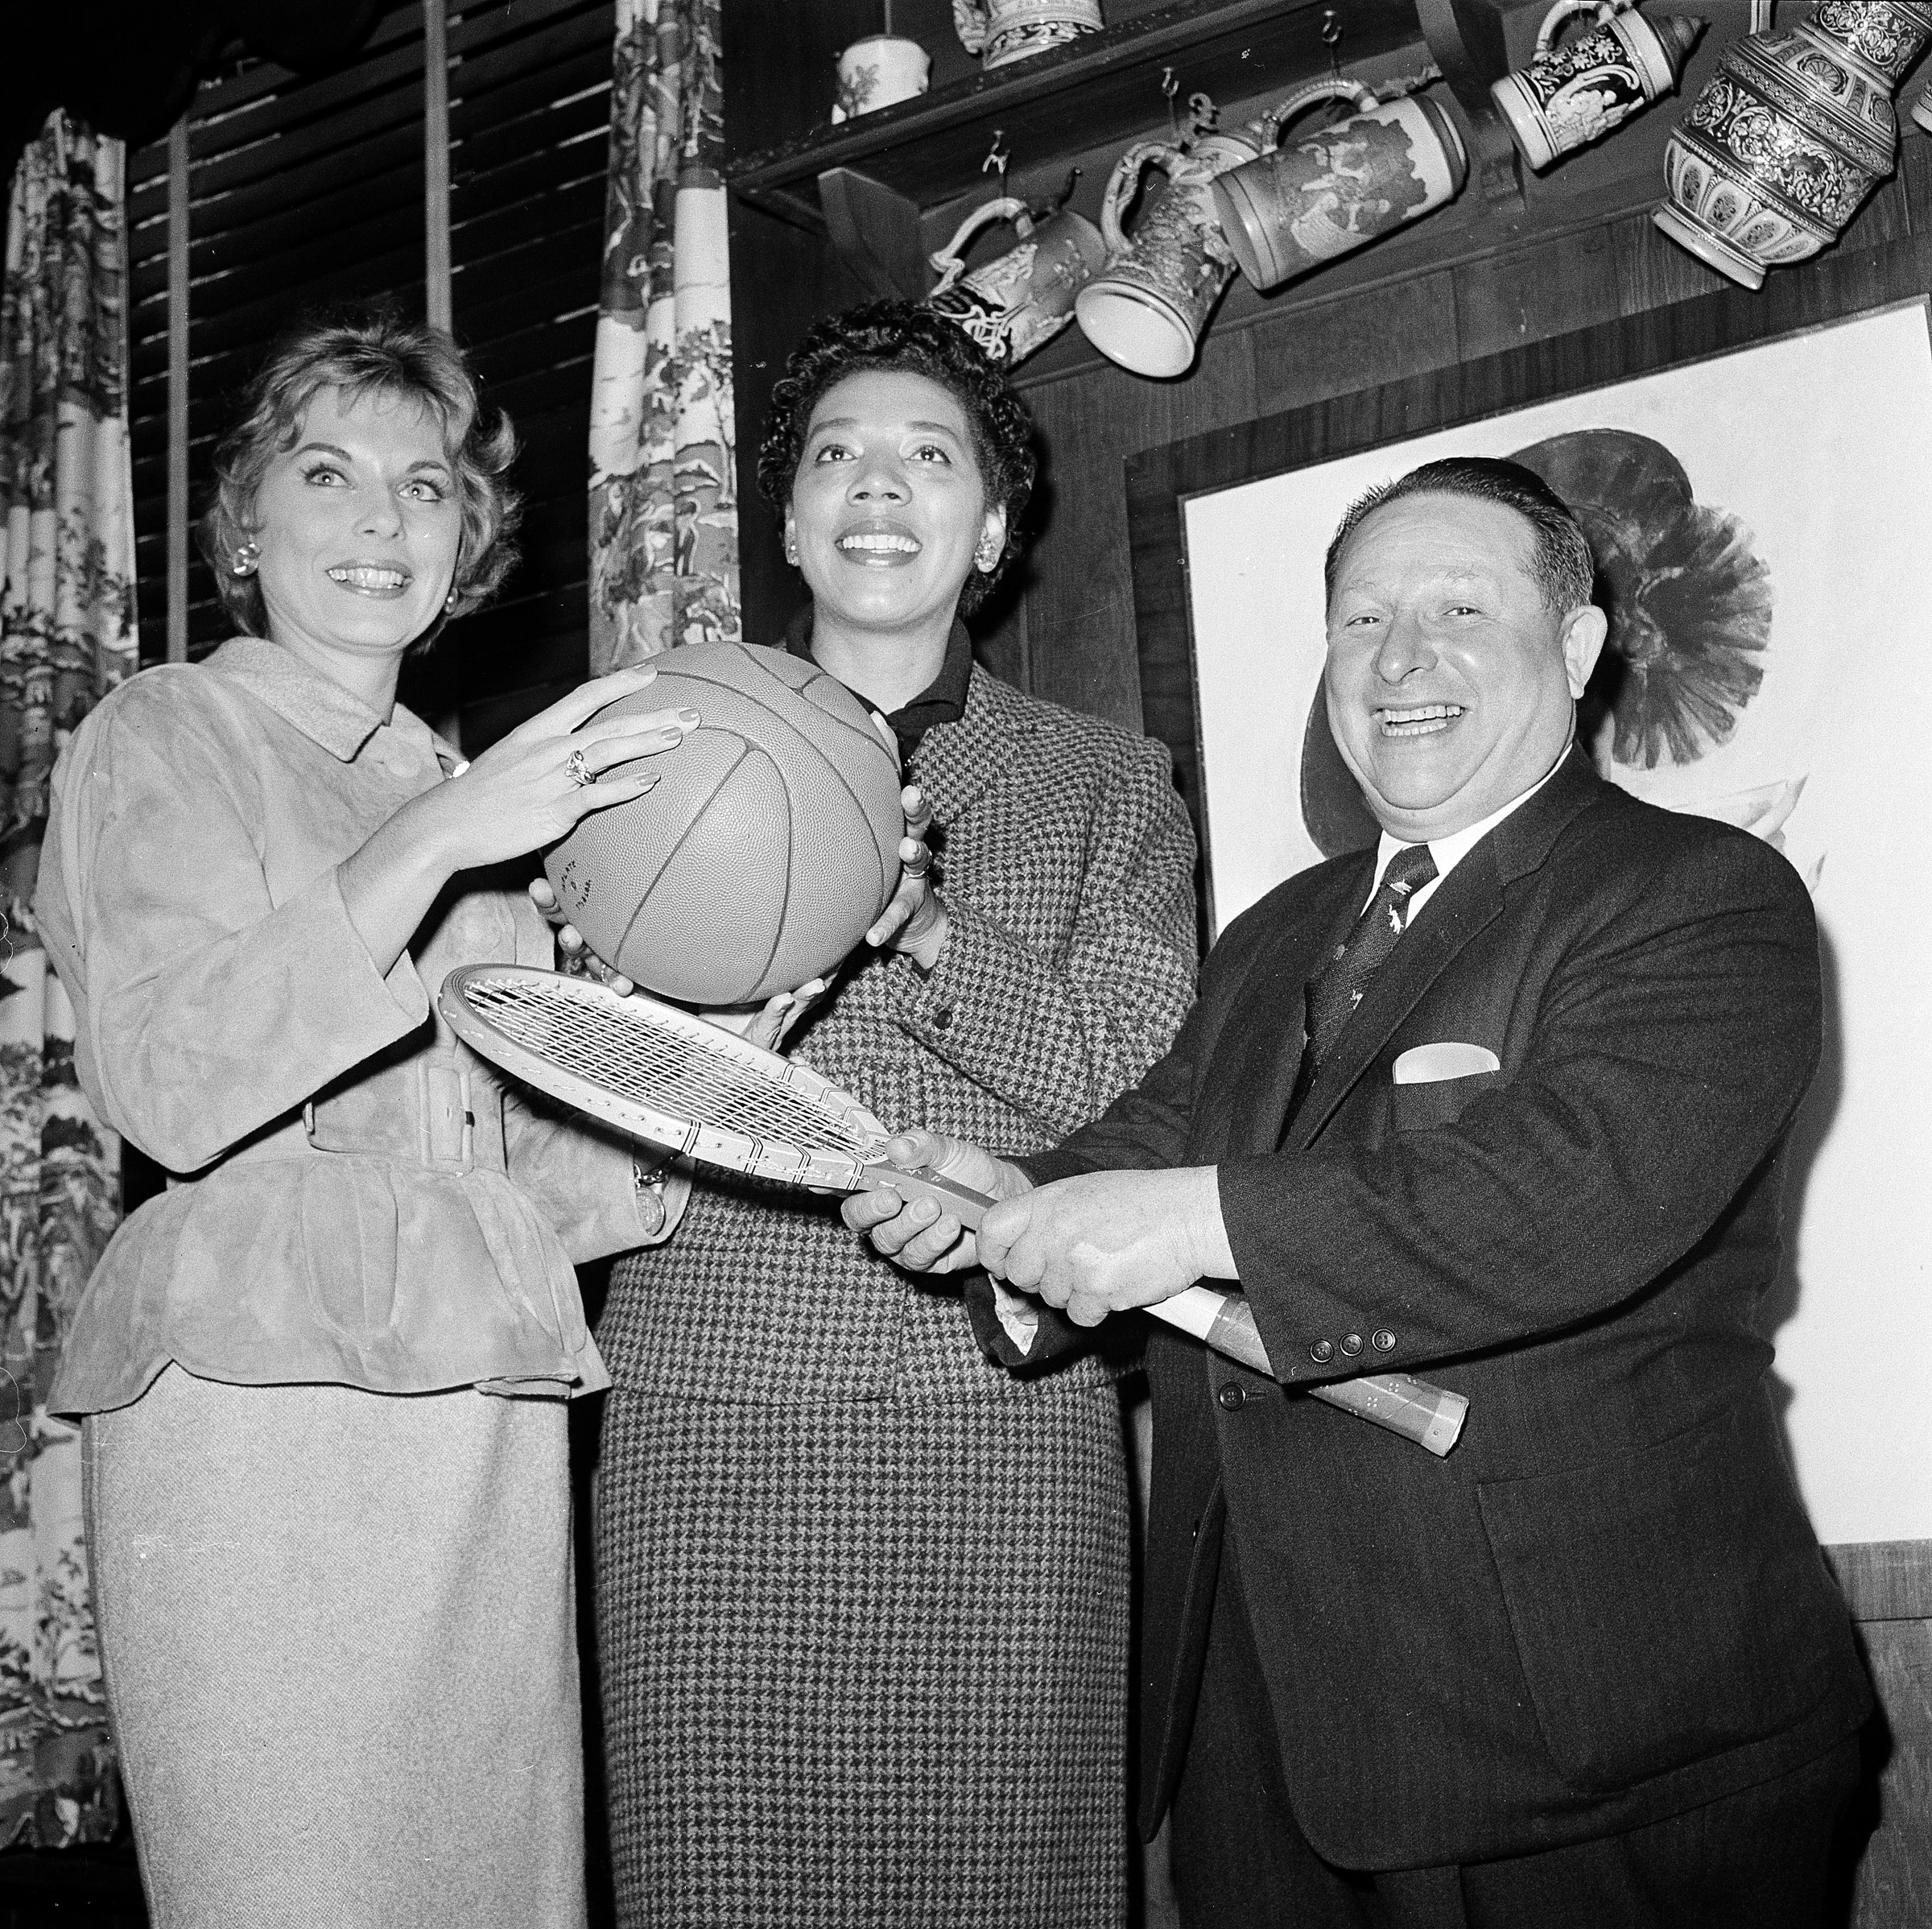 Tennis stars Althea Gibson, center, and Karol Fagerol are shown with Harlem Globetrotters' owner Abe Saperstein, where the women signed a professional contract with the Globetrotters to play at exhibition matches, Oct. 19, 1959, in New York.  (AP Pho...